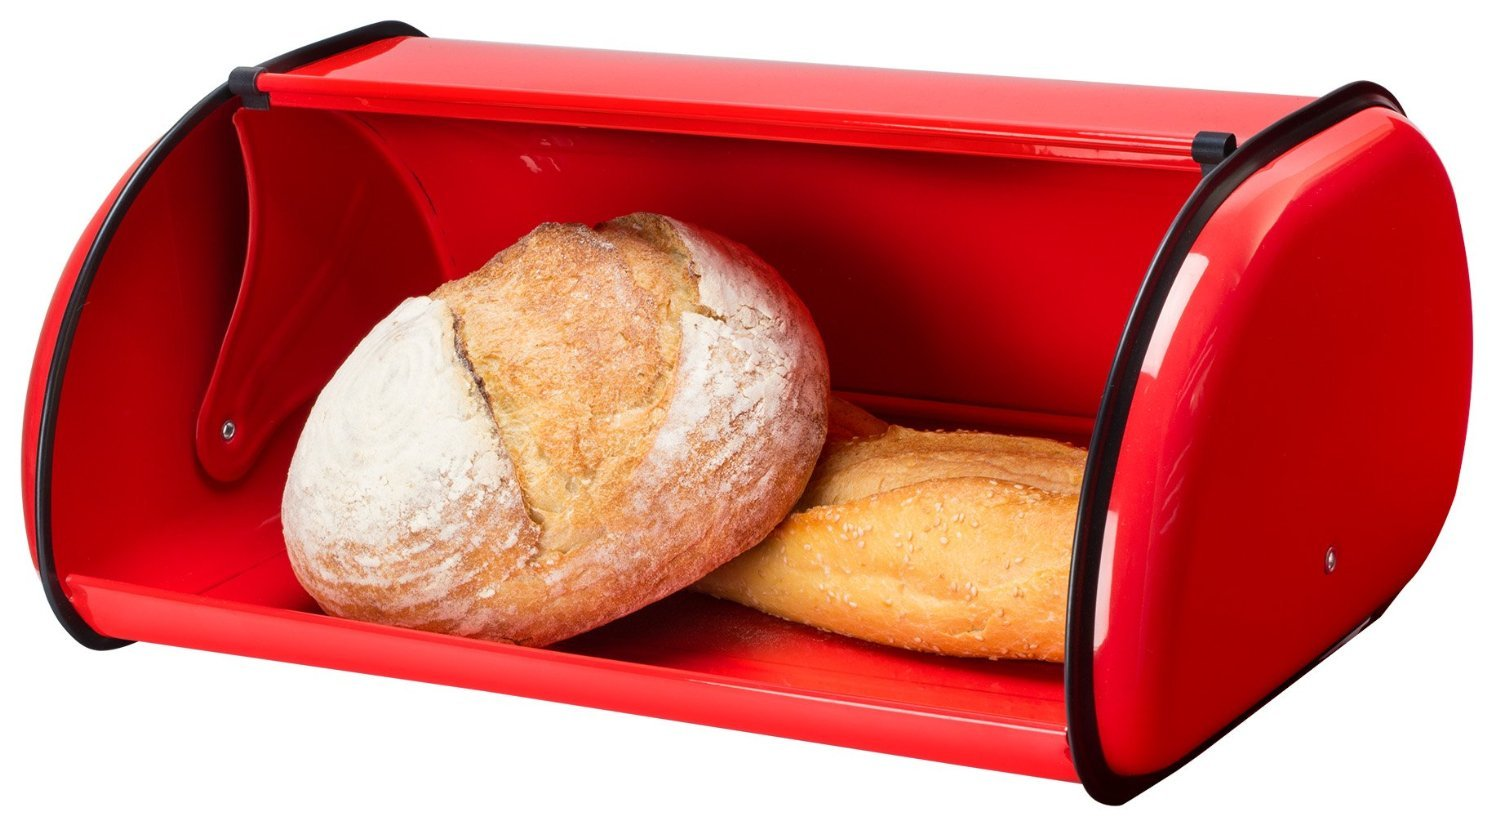 Greenco Stainless Steel Bread Bin Storage Box Roll Up Lid (Red) Red 2